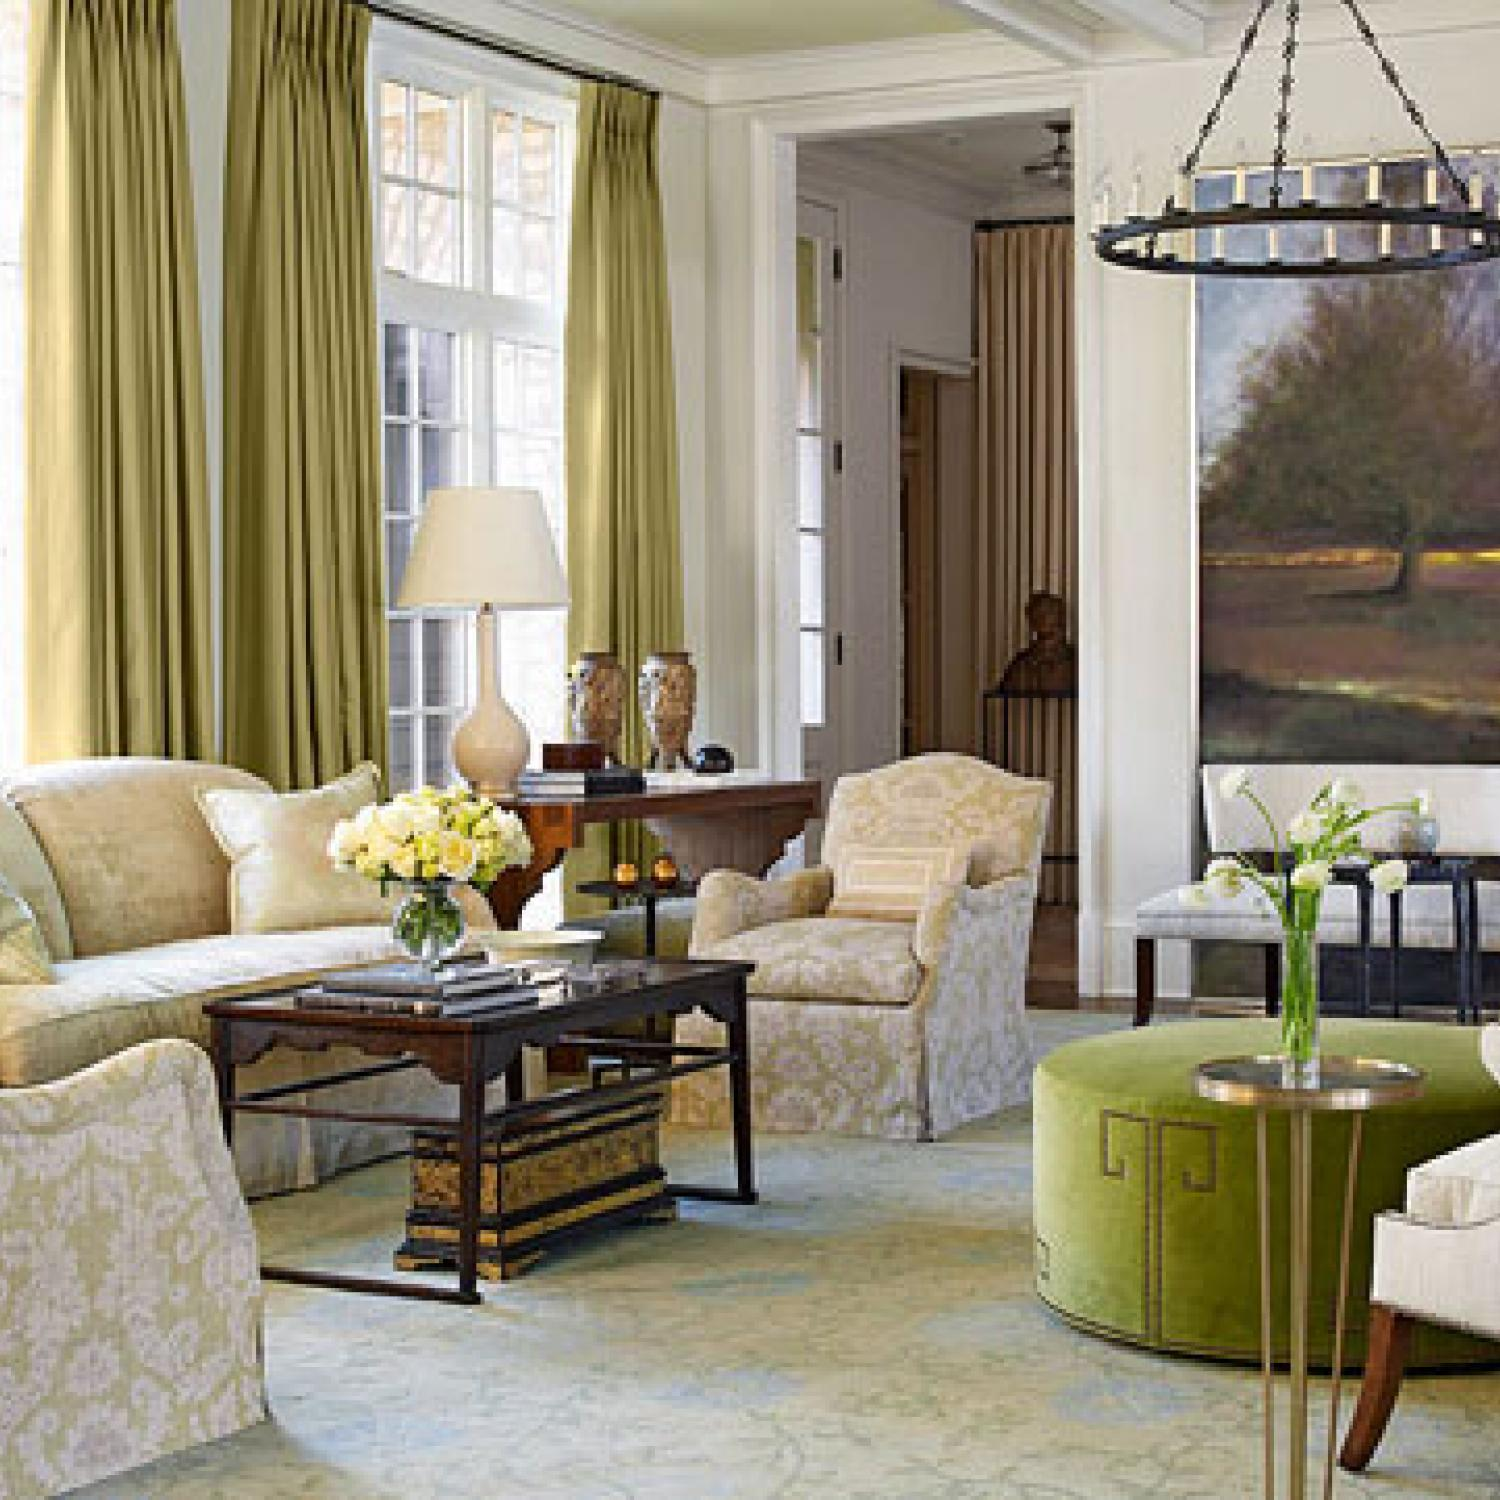 Traditional Interior Design By Ownby: New Home With Traditional Southern Design And Hospitality